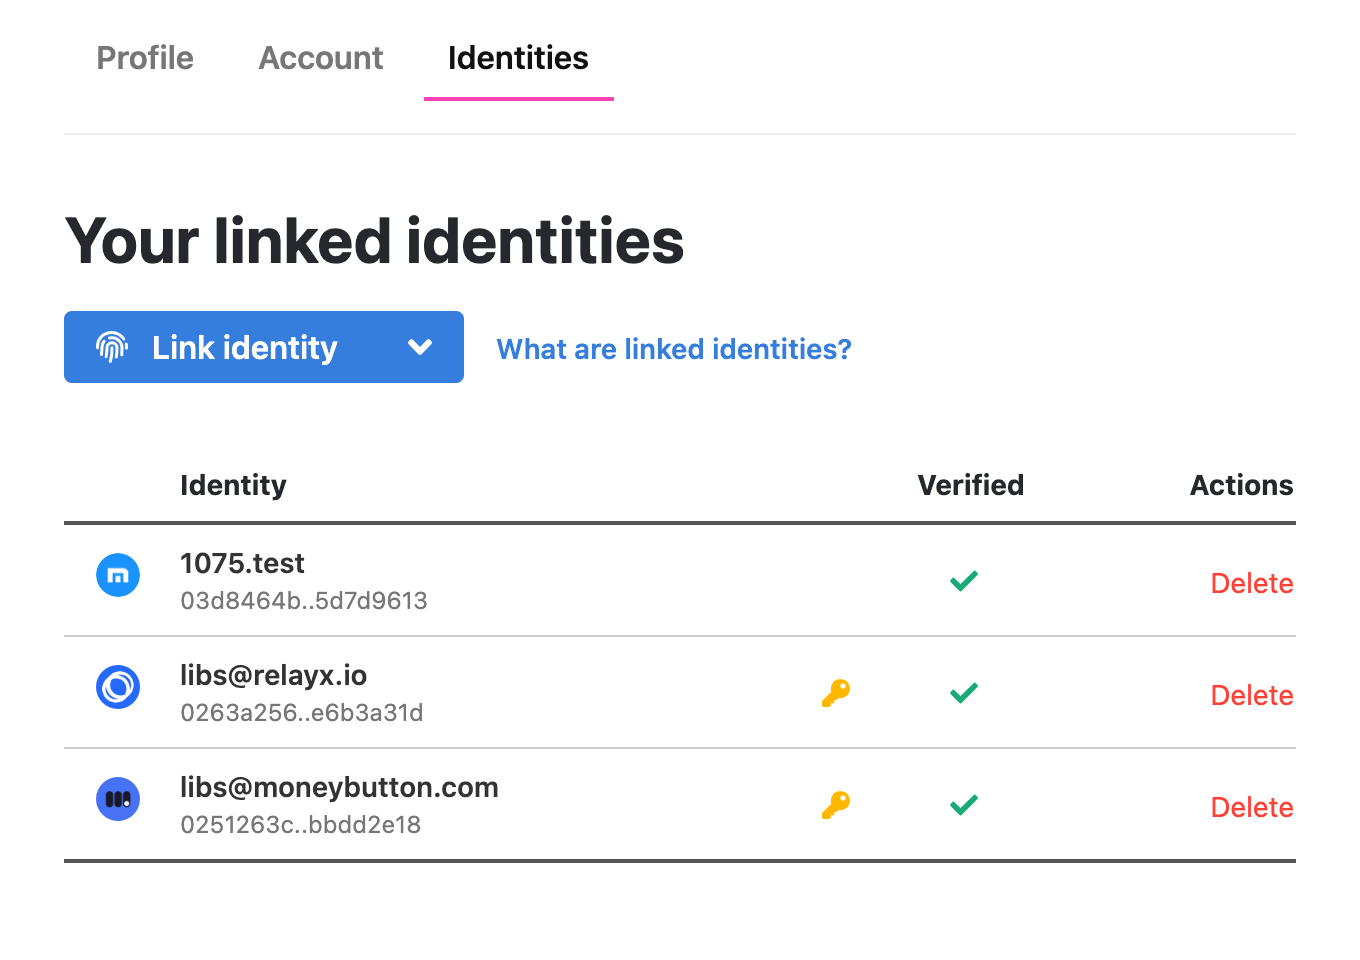 List of linked identities